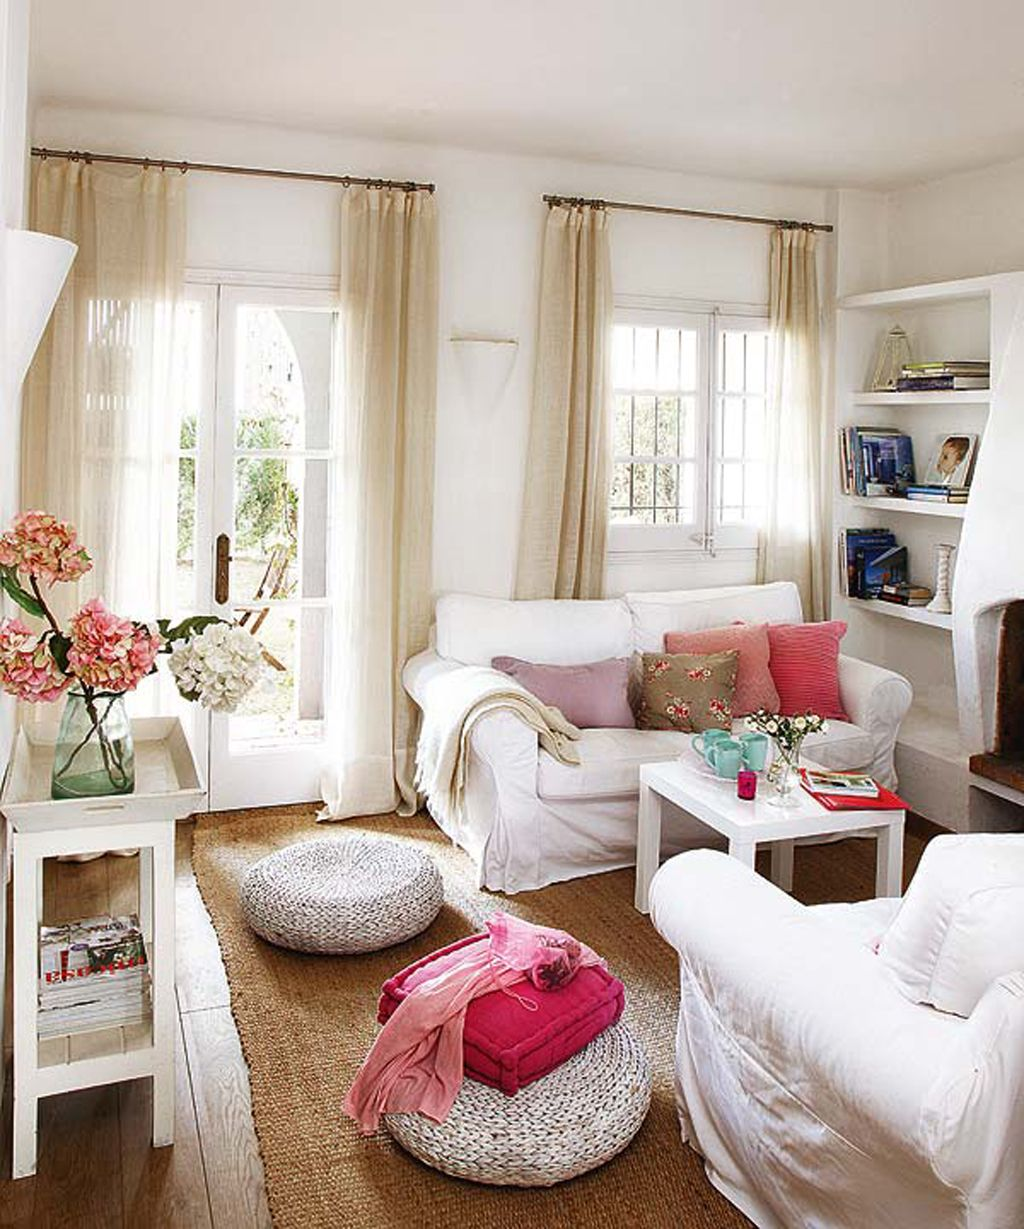 Awesome Small Space Living Room Design Ideas With Decorating Custom Small Space Living Room Design Design Inspiration